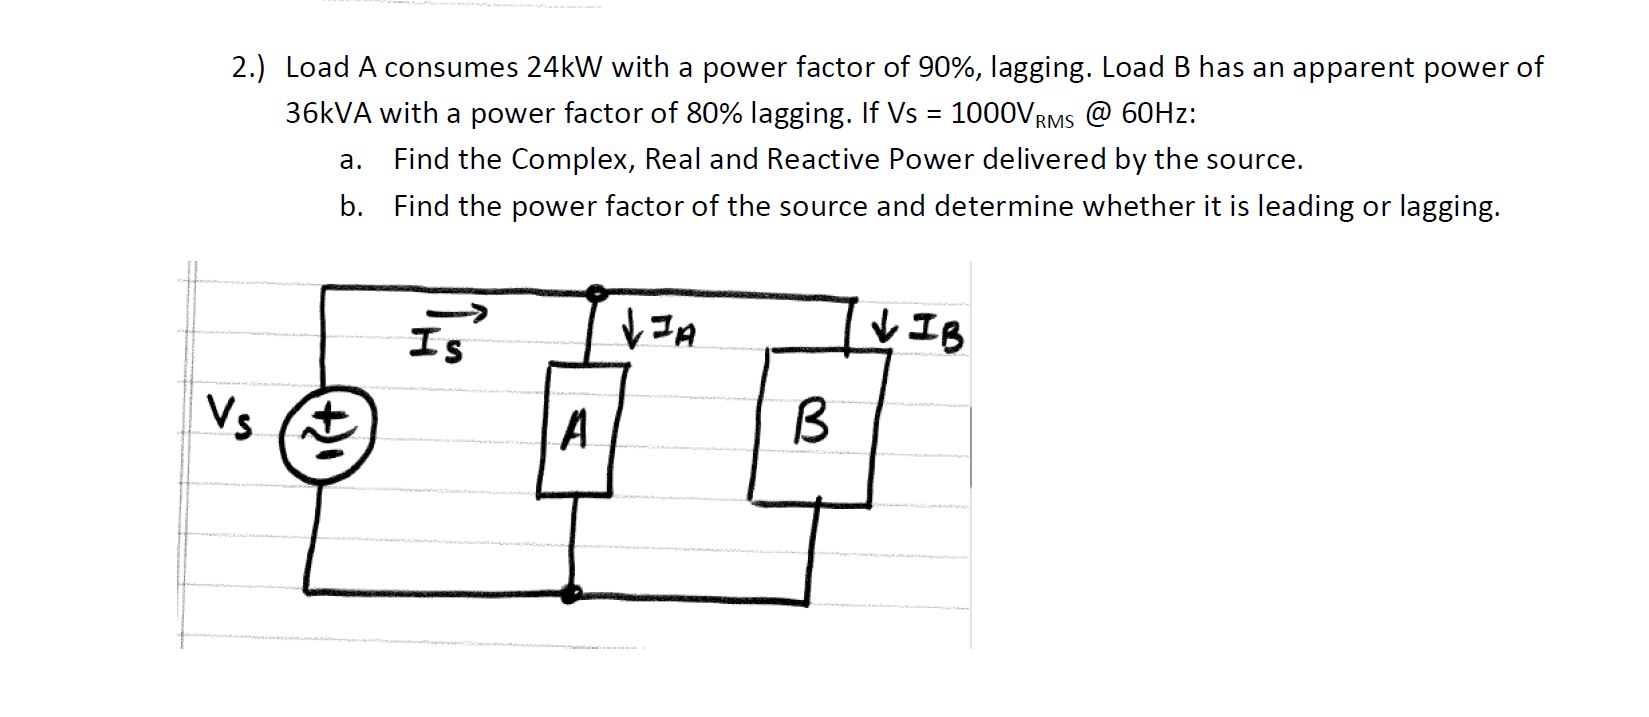 Load A consumes 24kW with a power factor of 90%, l